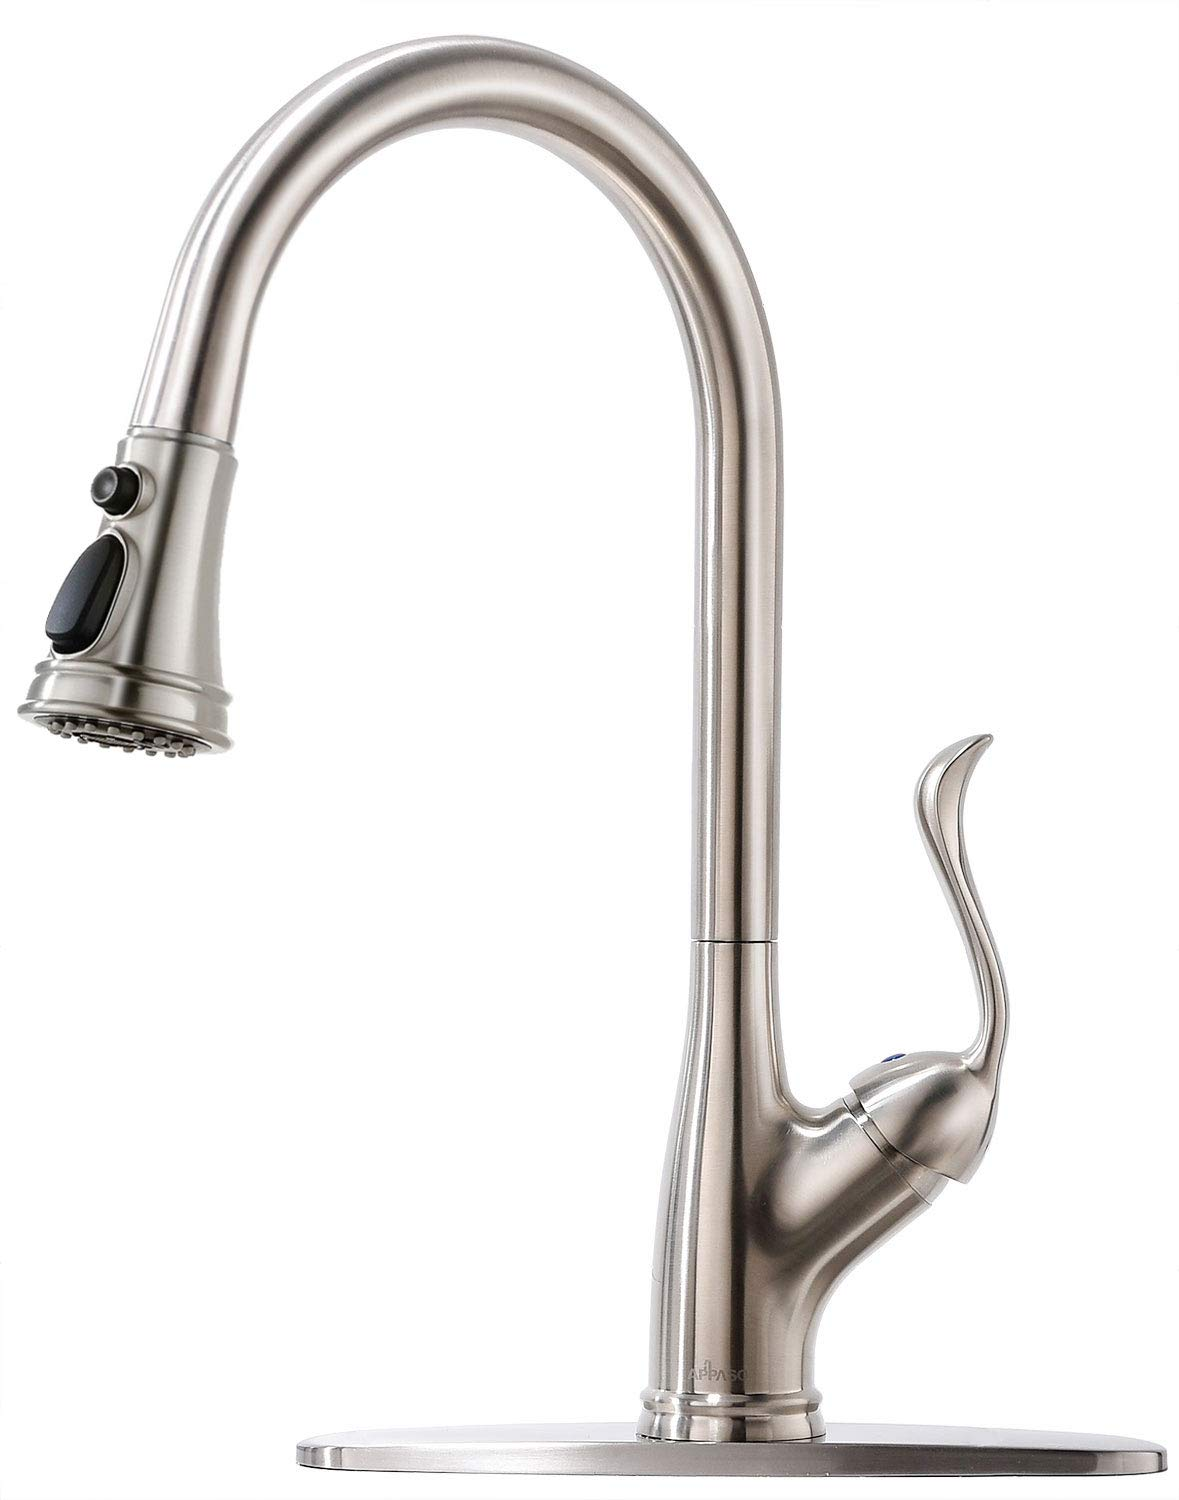 APPASO Single Handle Pull Down Kitchen Faucet with Sprayer, Stainless Steel Brushed Nickel High Arc Single Hole Pull Out Spray Head Kitchen Sink Faucet with Escutcheon by APPASO (Image #1)